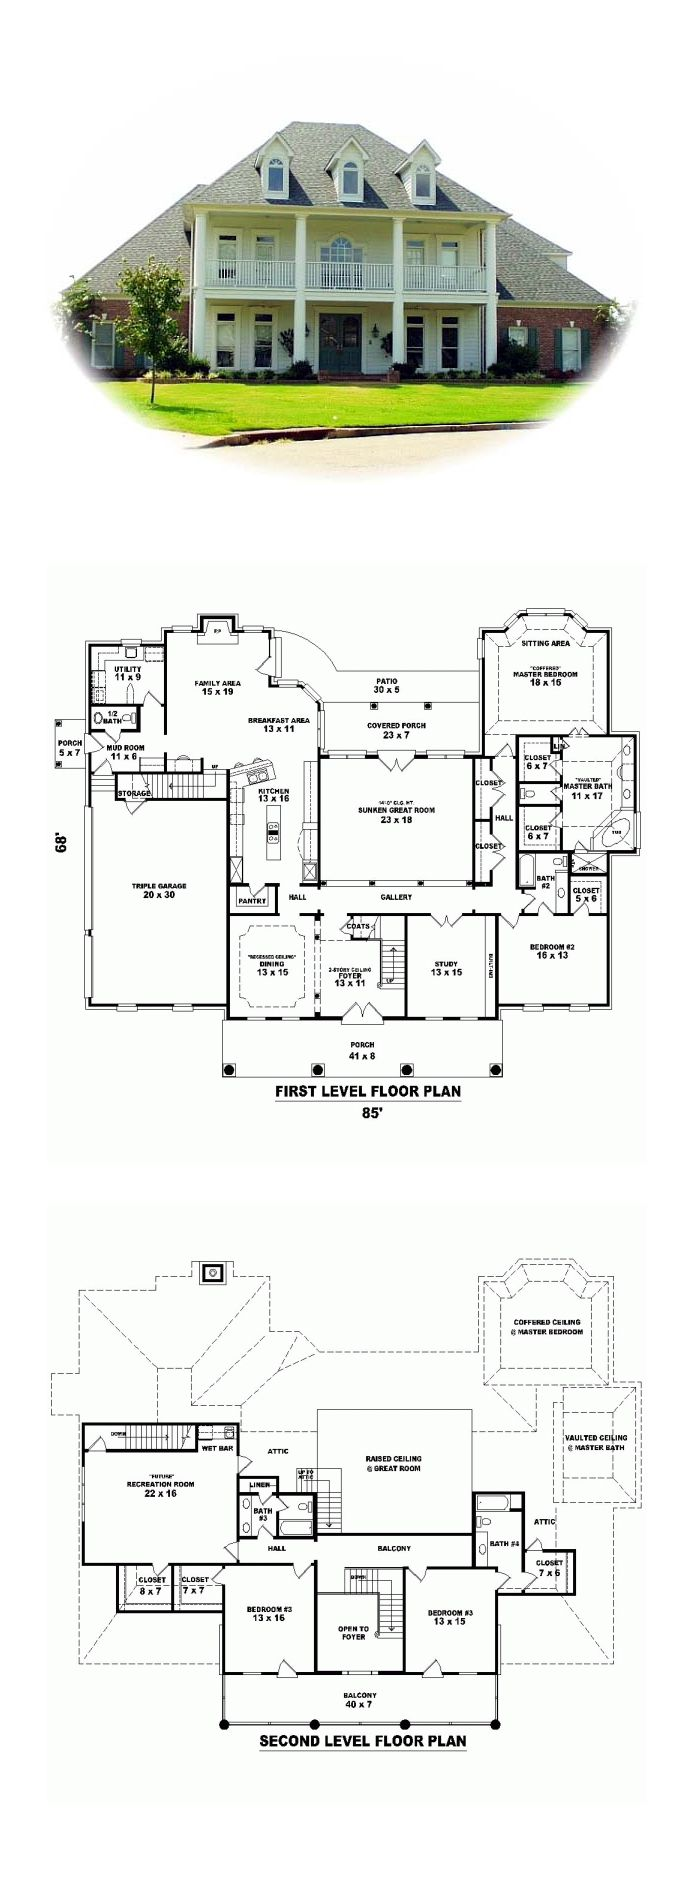 50 best images about plantation house plans on pinterest for Plantation floor plan